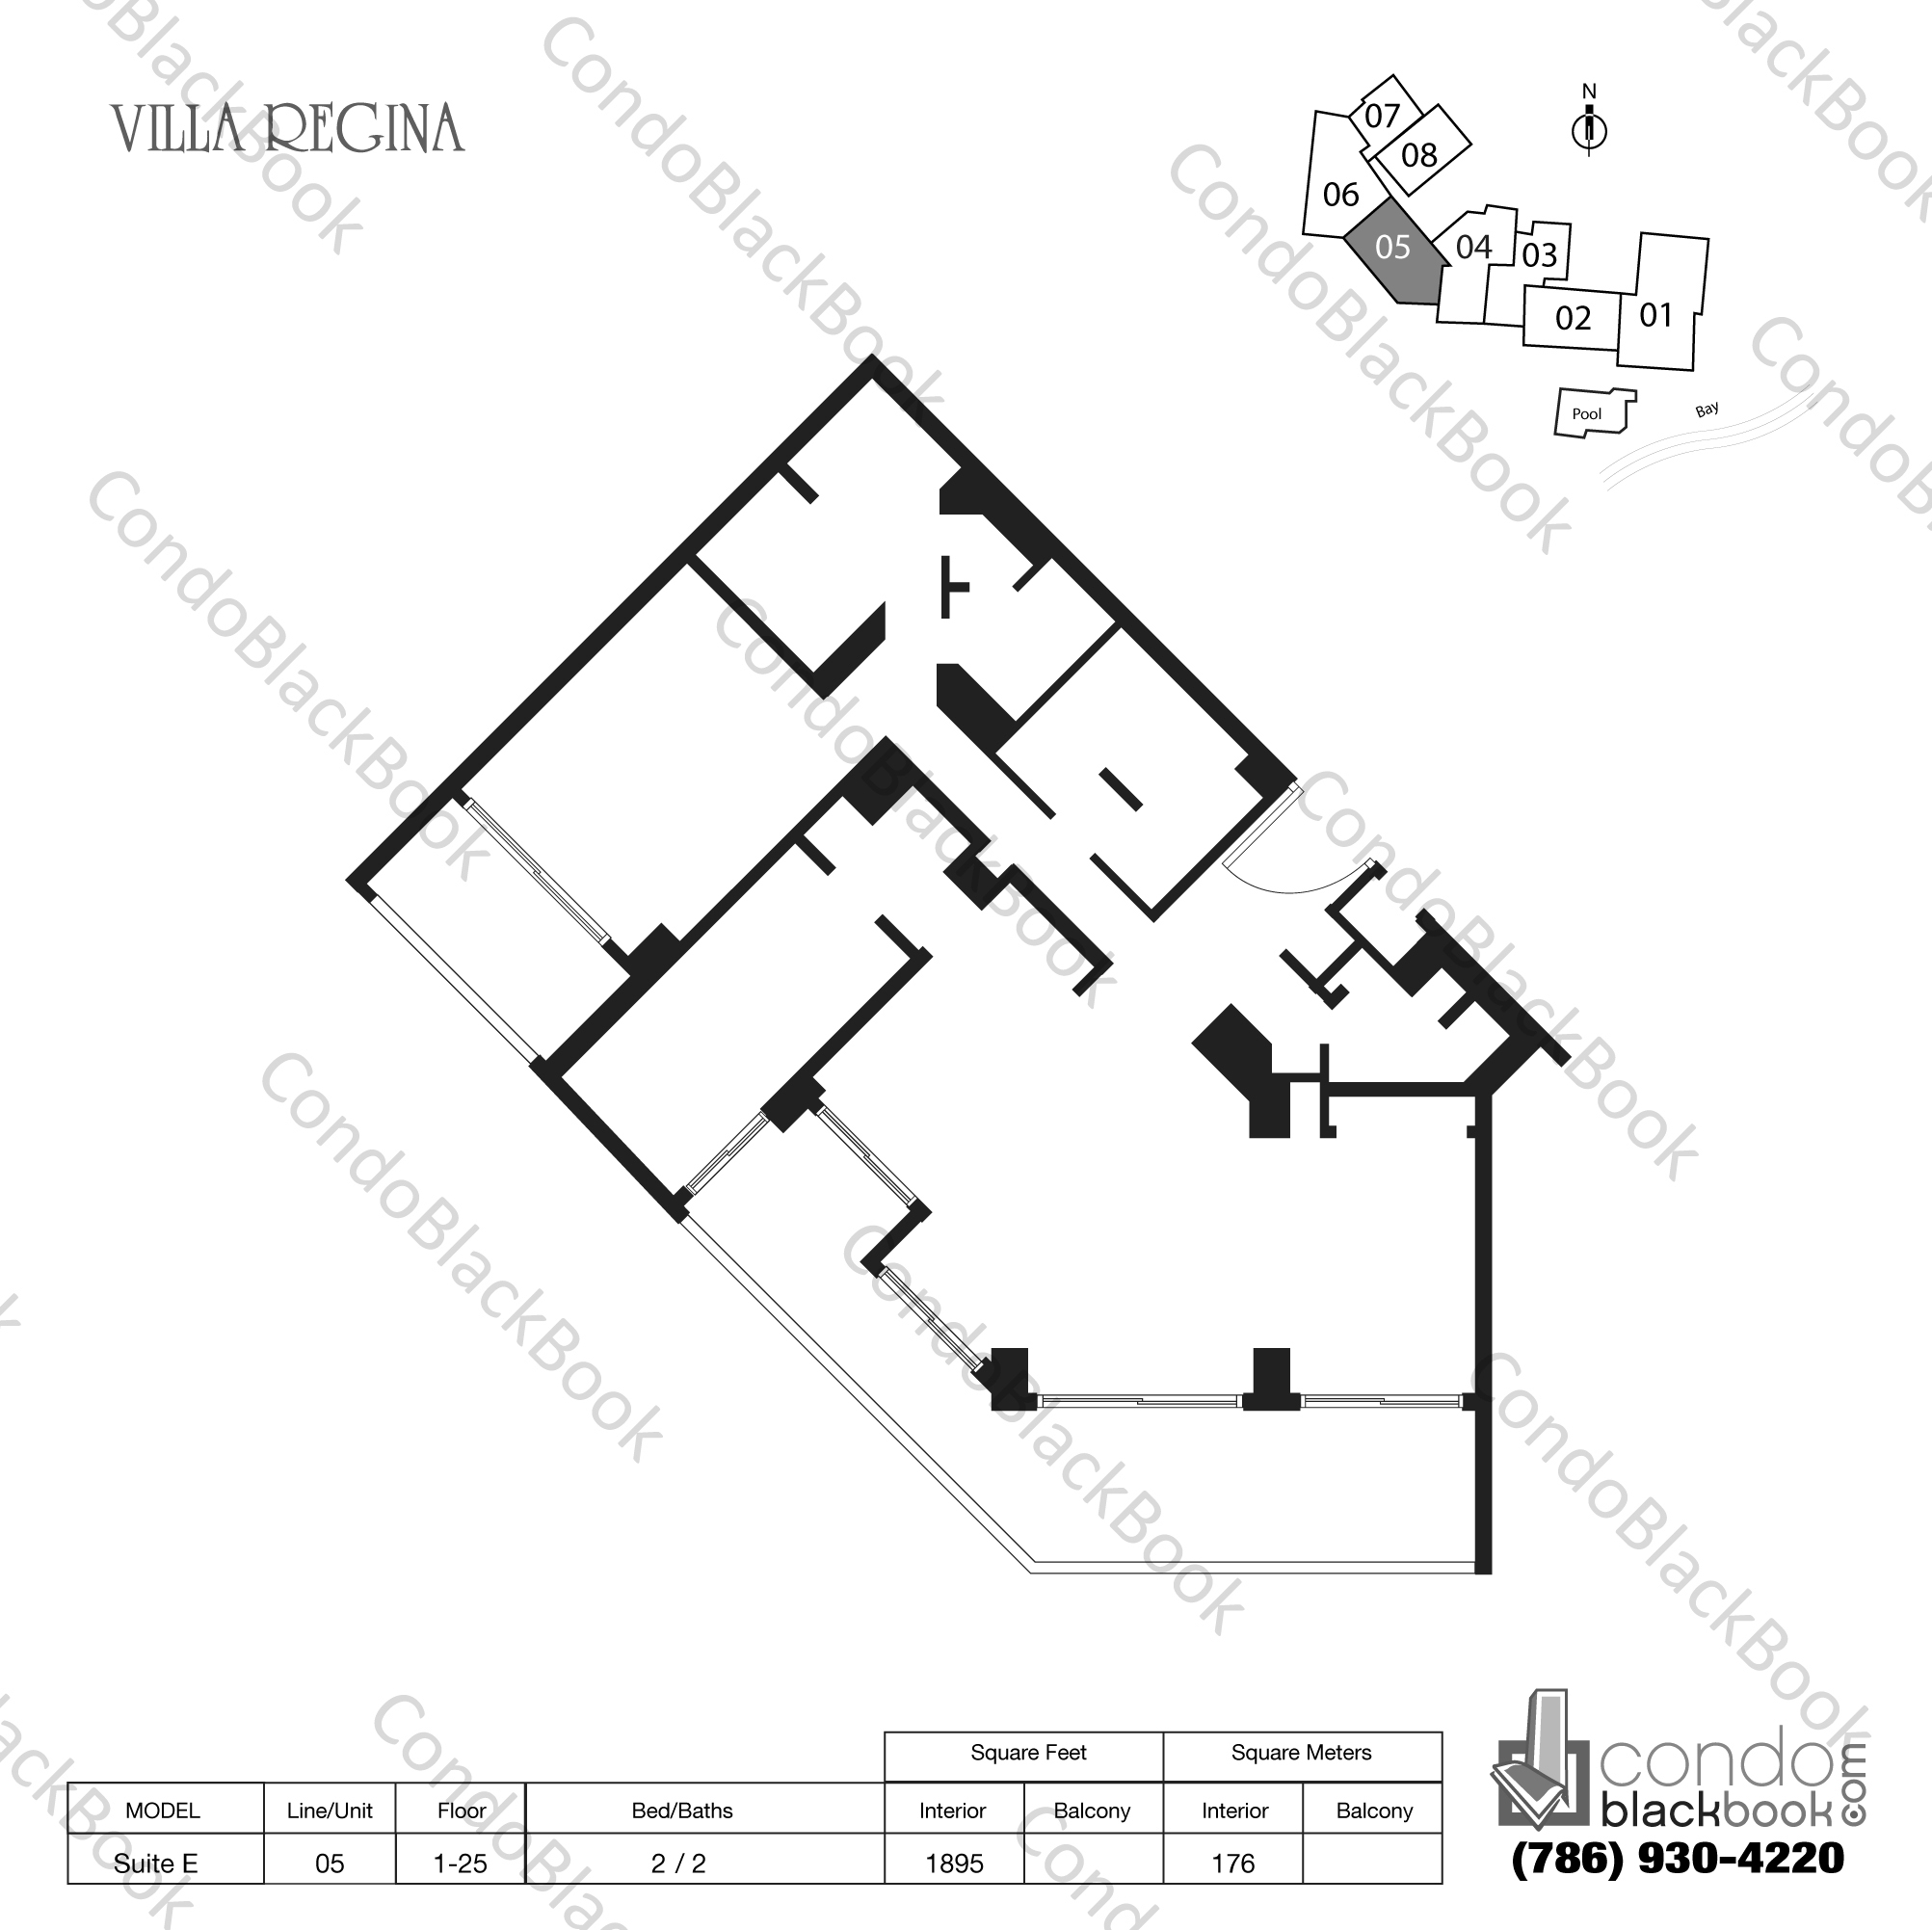 Floor plan for Villa Regina Condo Brickell Miami, model Suite E, line 05, 2 / 2 bedrooms, 1895 sq ft